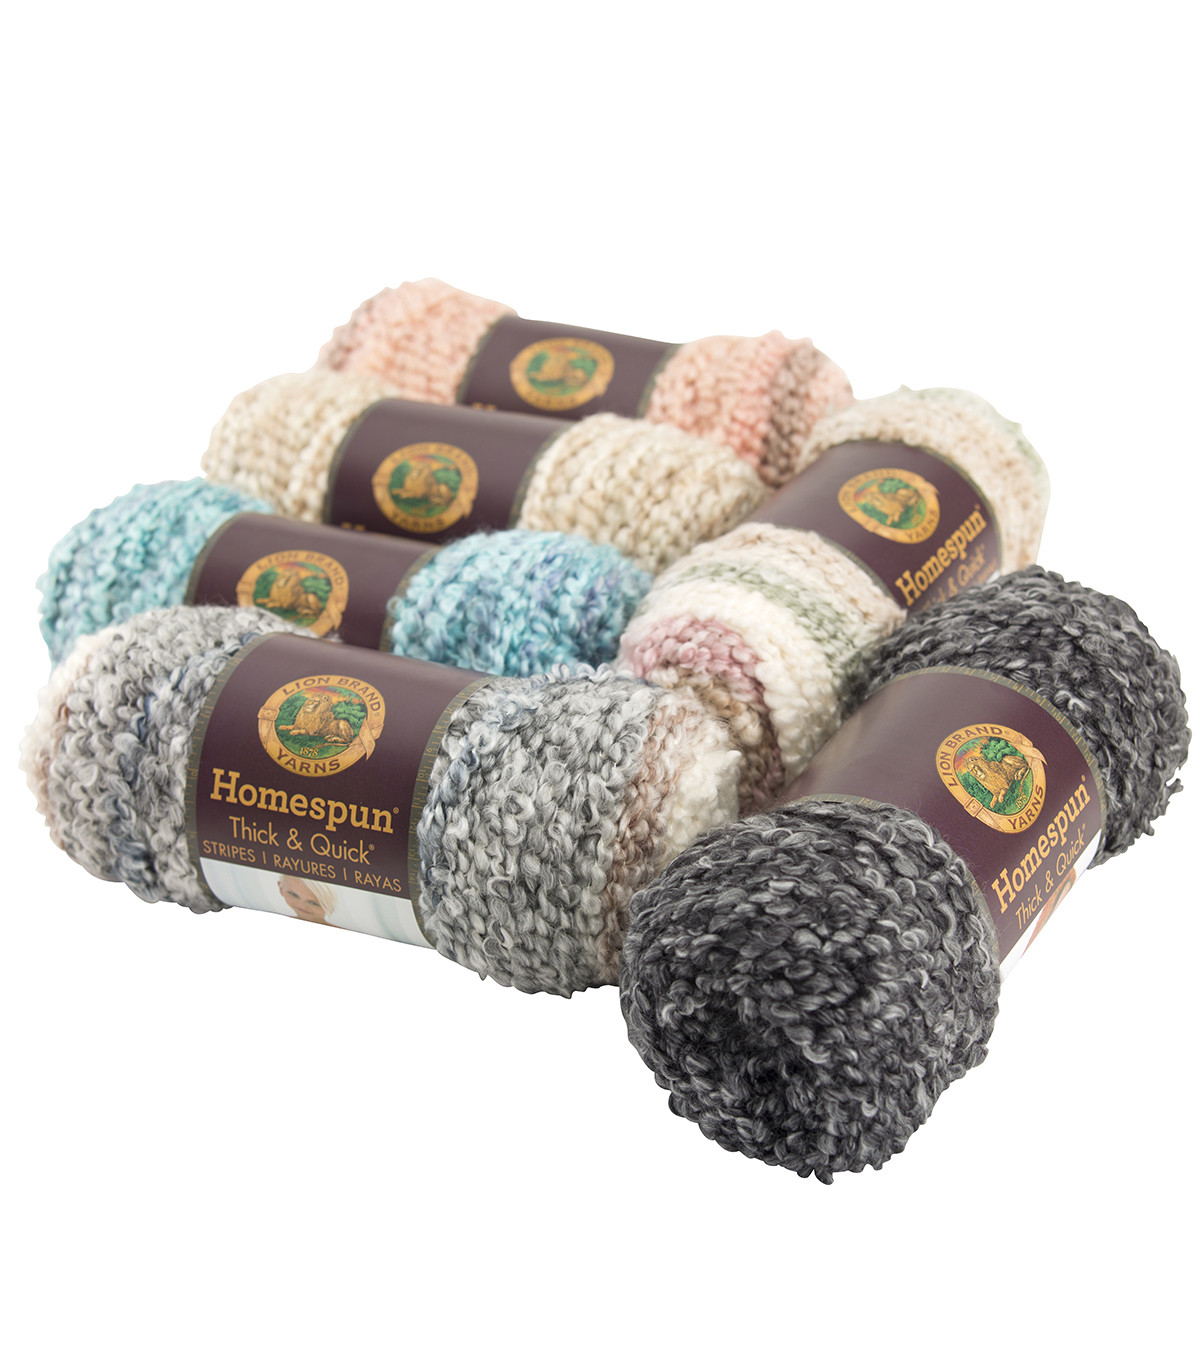 Homespun Thick and Quick Awesome Lion Brand Homespun Thick & Quick Yarn at Joann Of Lovely 41 Images Homespun Thick and Quick